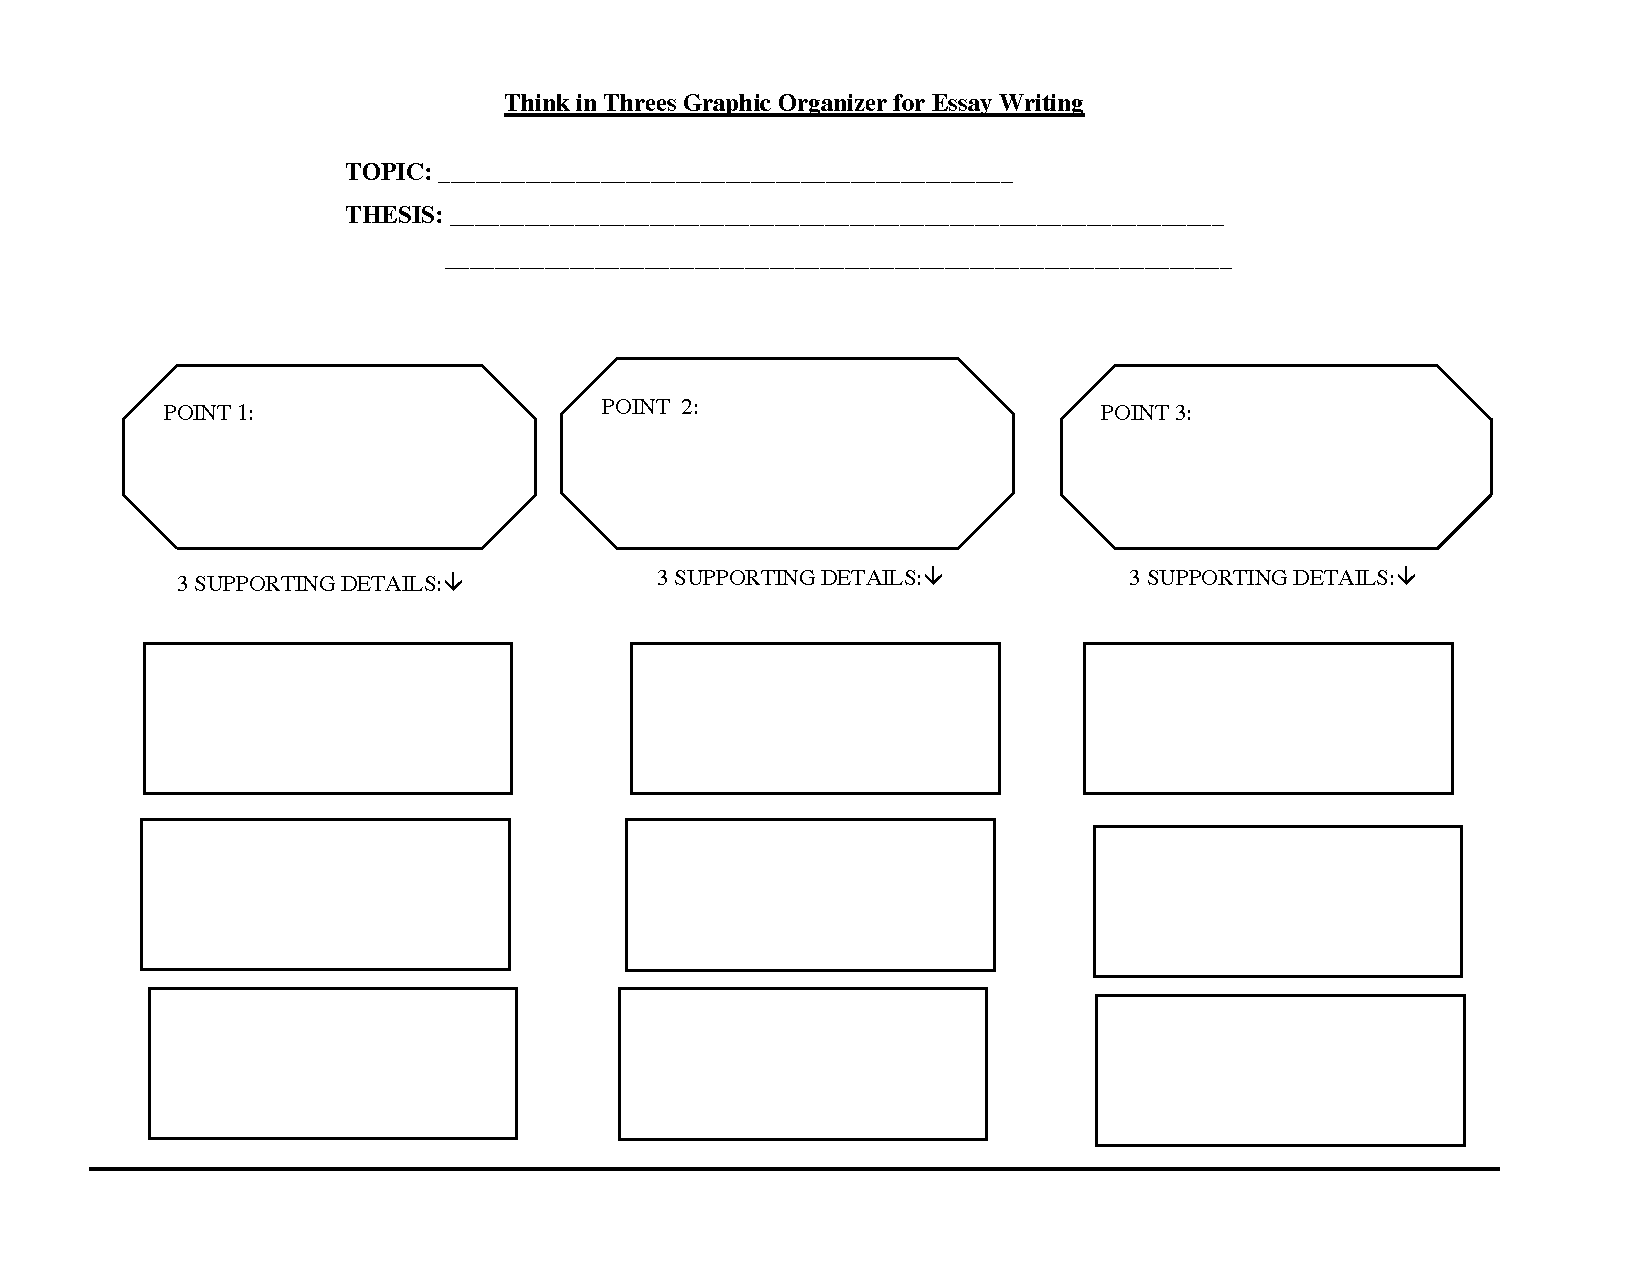 Writing graphic organizer | Graphic Organizers for Writing | Pinterest ...